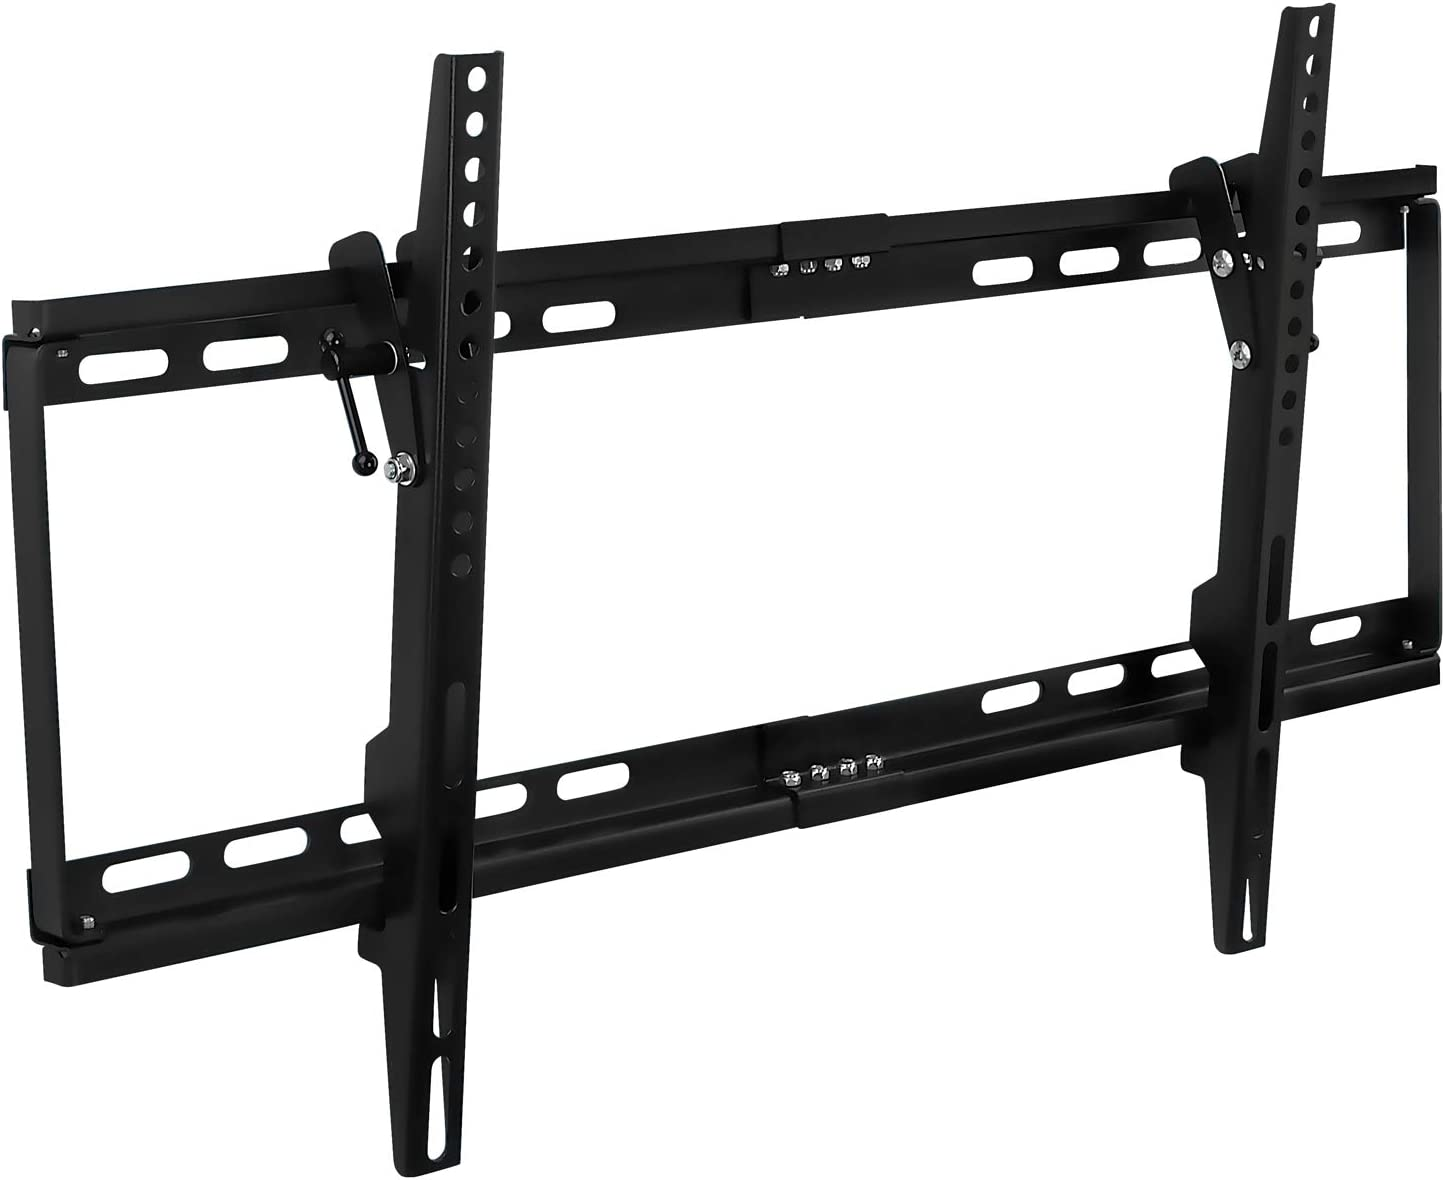 Mount-It Slim Tilting TV Wall Mount 3 Bracket Miami Mall Profile for Low Over item handling